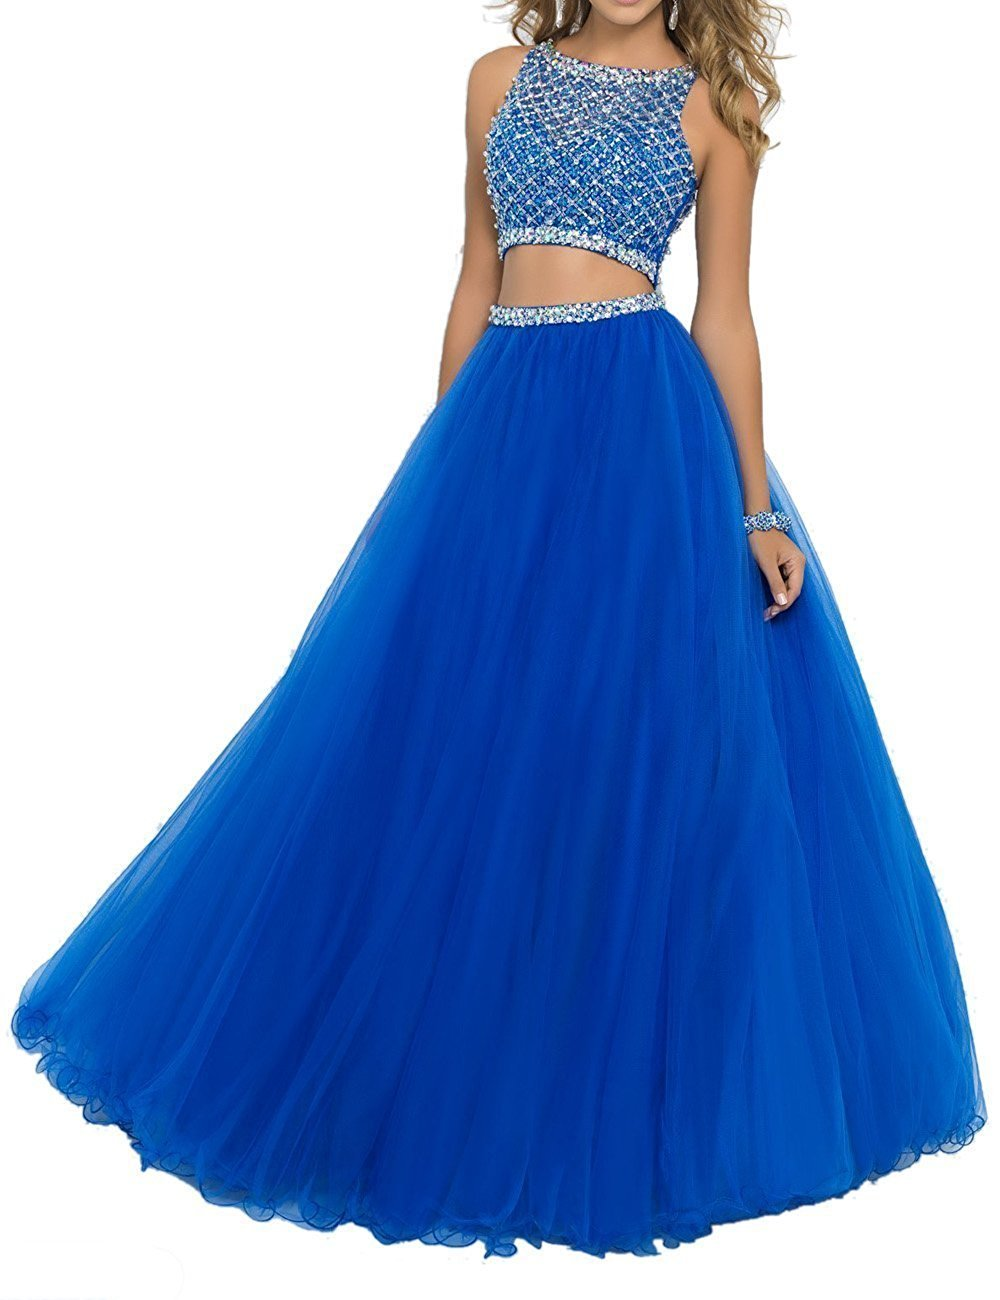 SeasonMall Women's Prom Dress Two Pieces Bateau Beaded Bodice Tulle Dresses Size 0 US Royal Blue